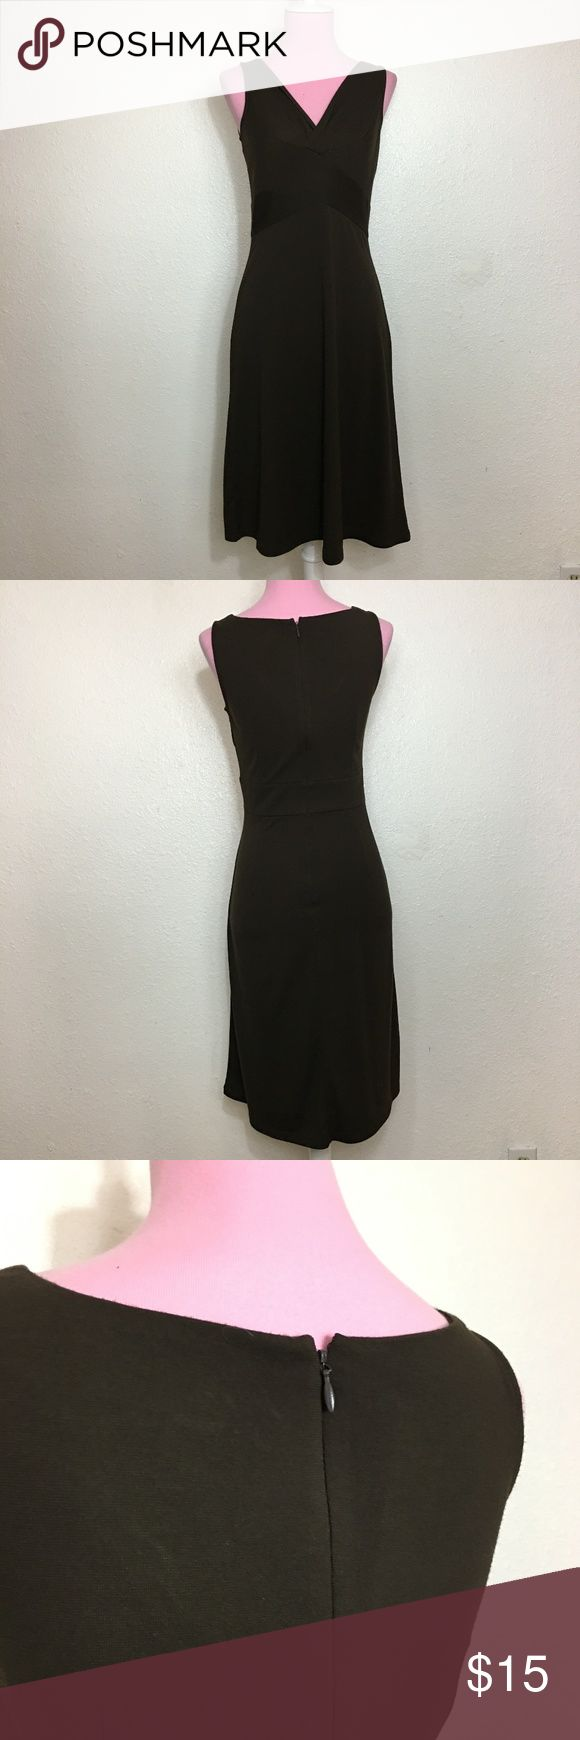 Ann Taylor LOFT brown petites dress No sleeves Zips and hooks in the back Bust part slightly crosses a little  Approximate measurements in inches: Armpit to armpit: 15 Shoulder to shoulder: 11 /2 front Shoulder to hem: 37  ****Mannequin in a 6/8. Offers on bundles are considered LOFT Dresses